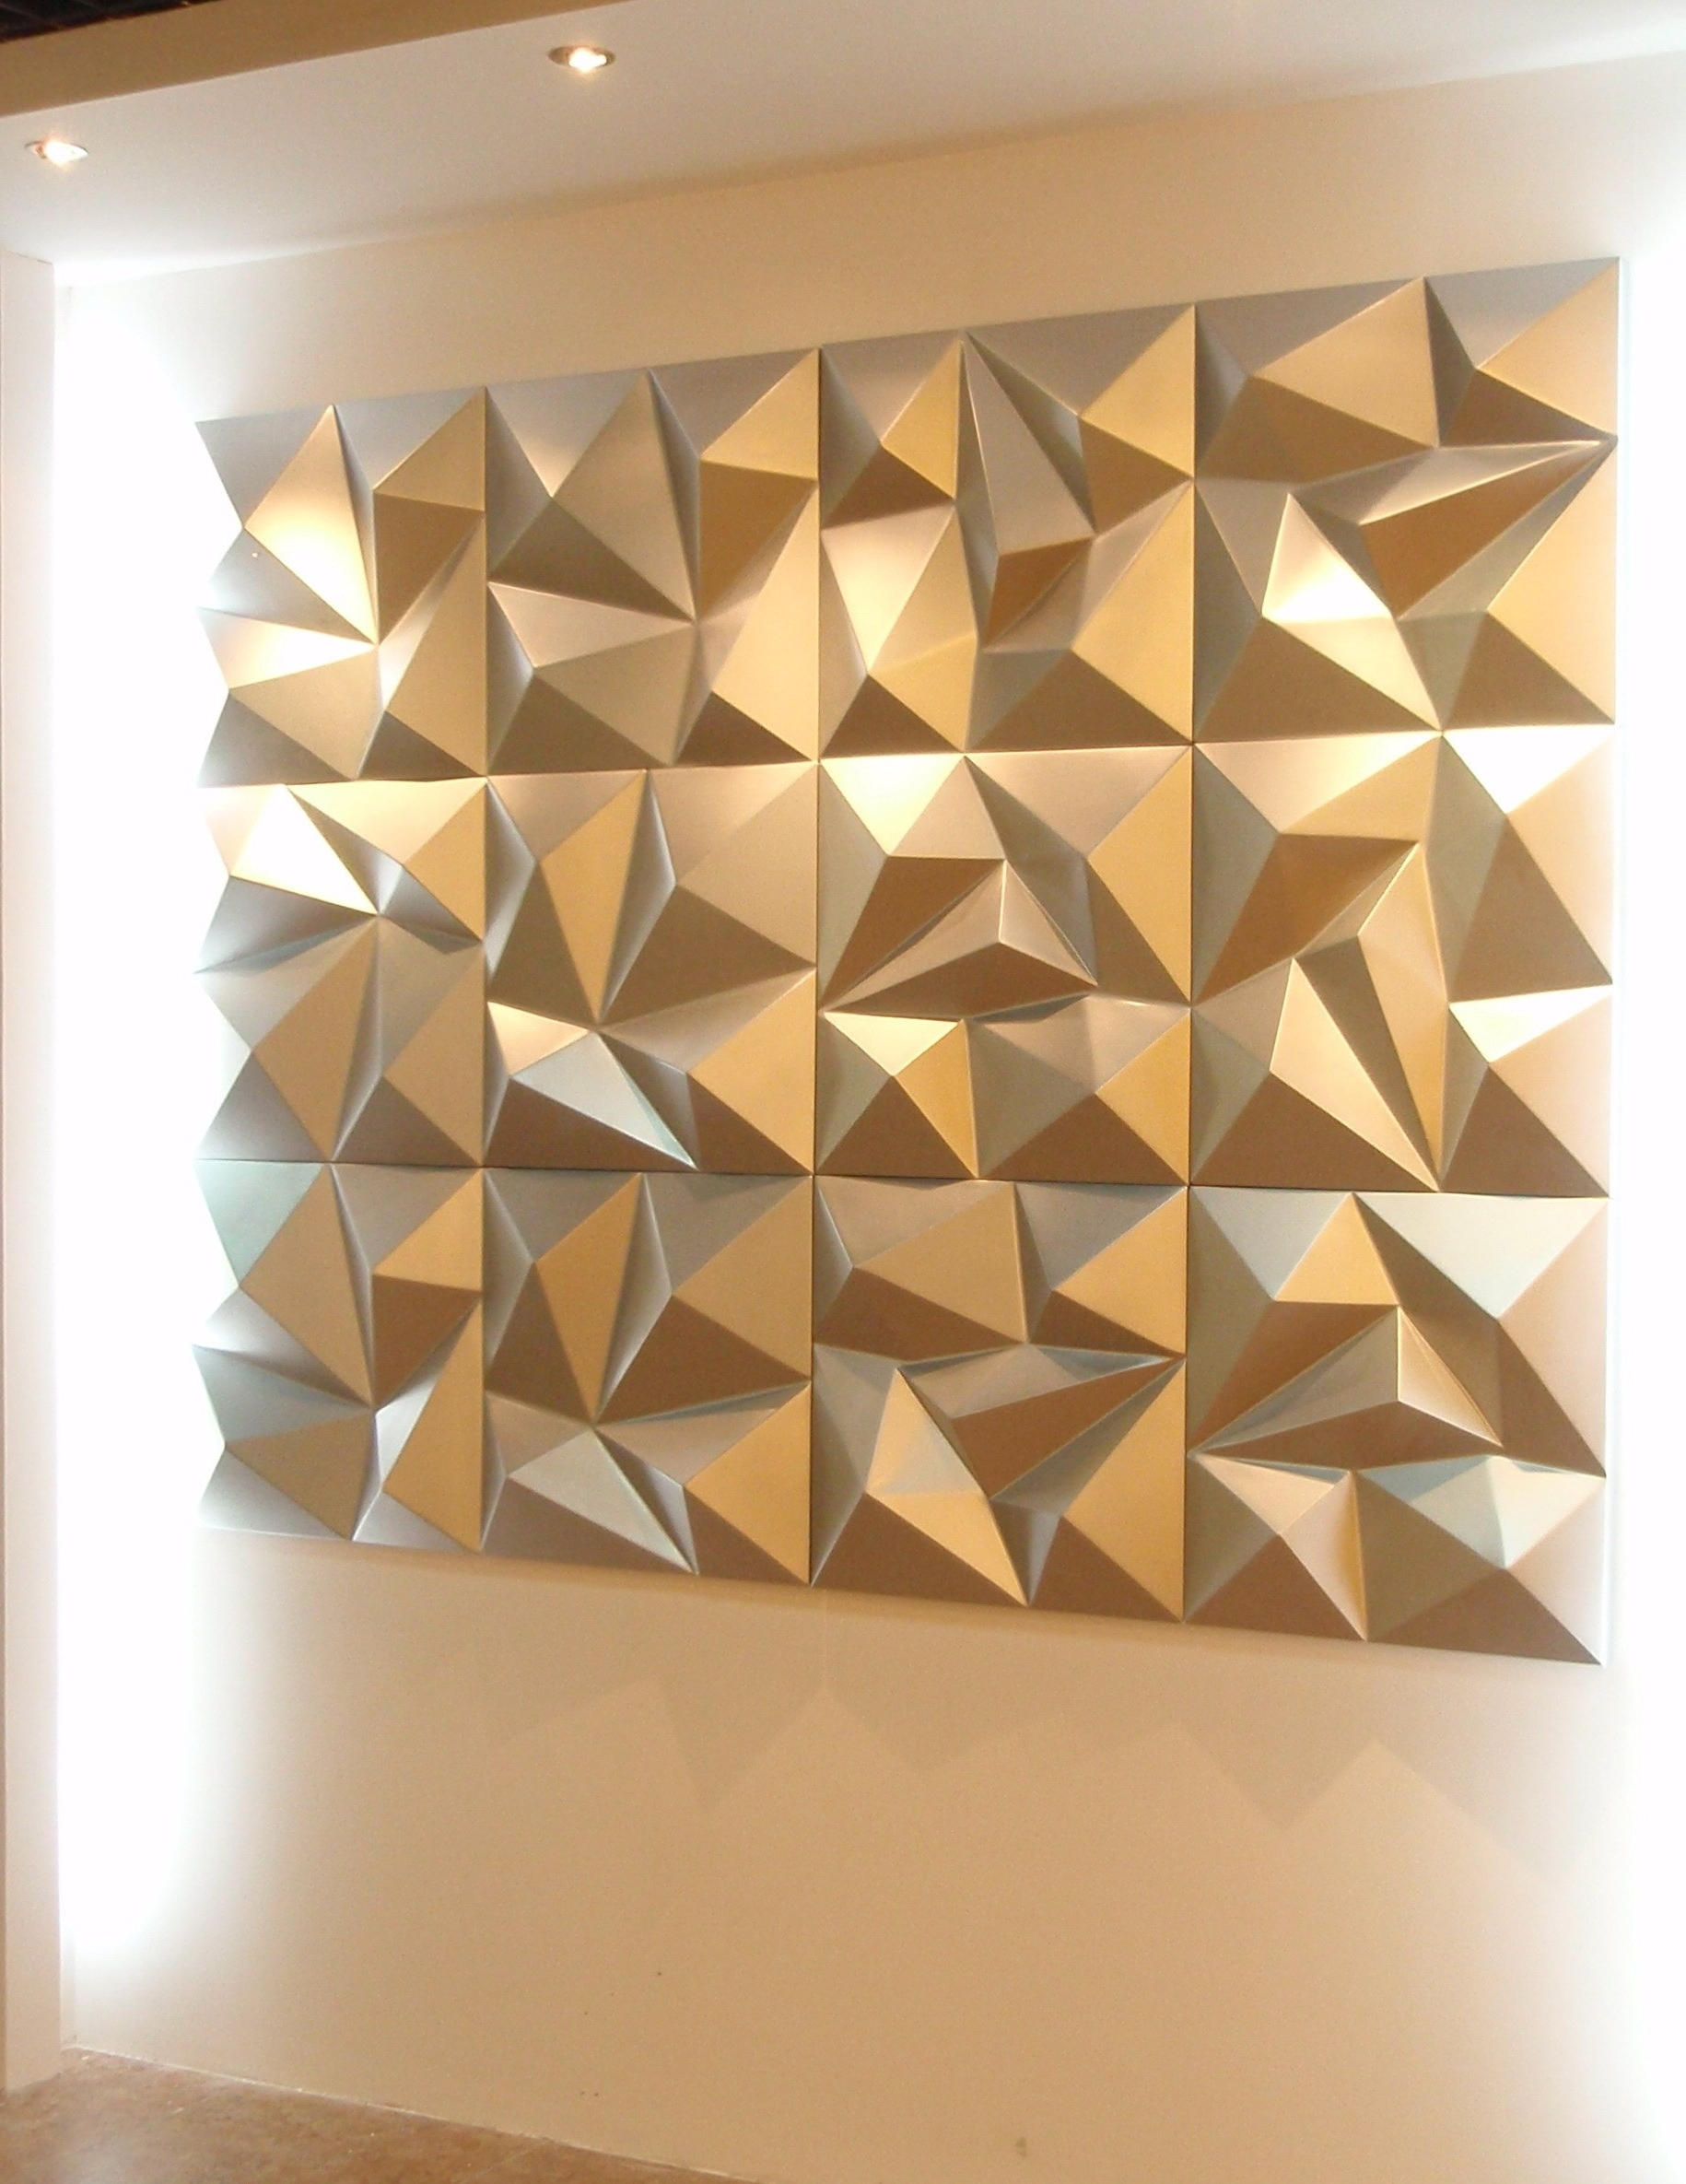 Triwol 3d Interior Decorative Wall Panels Art Panel Glamorous In Preferred 3d Wall Panels Wall Art (View 9 of 15)